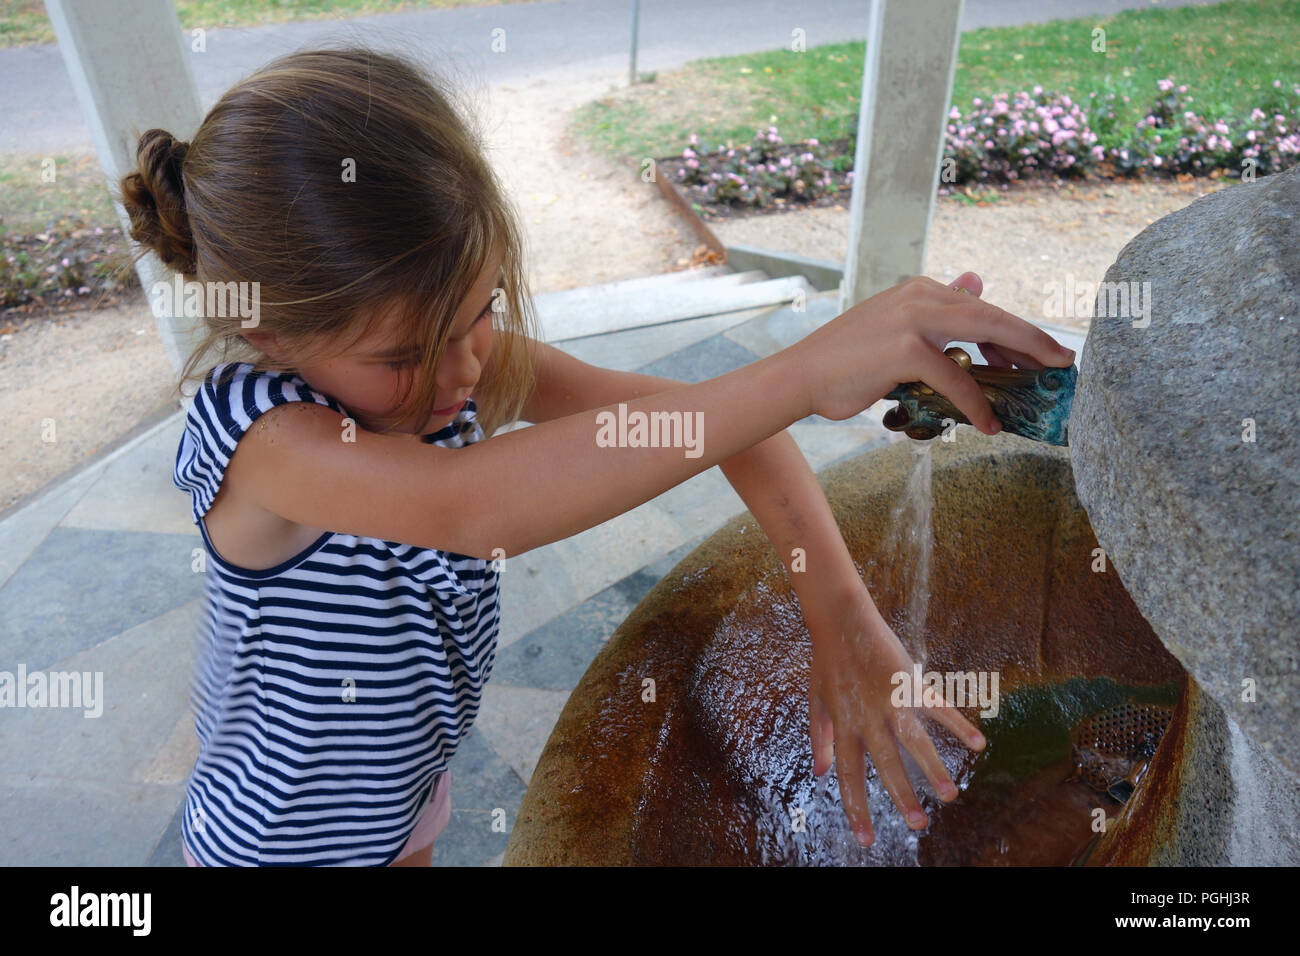 Young girl at a mineral spring fountain tap in spa town Karlovy Vary Czech Republic Stock Photo